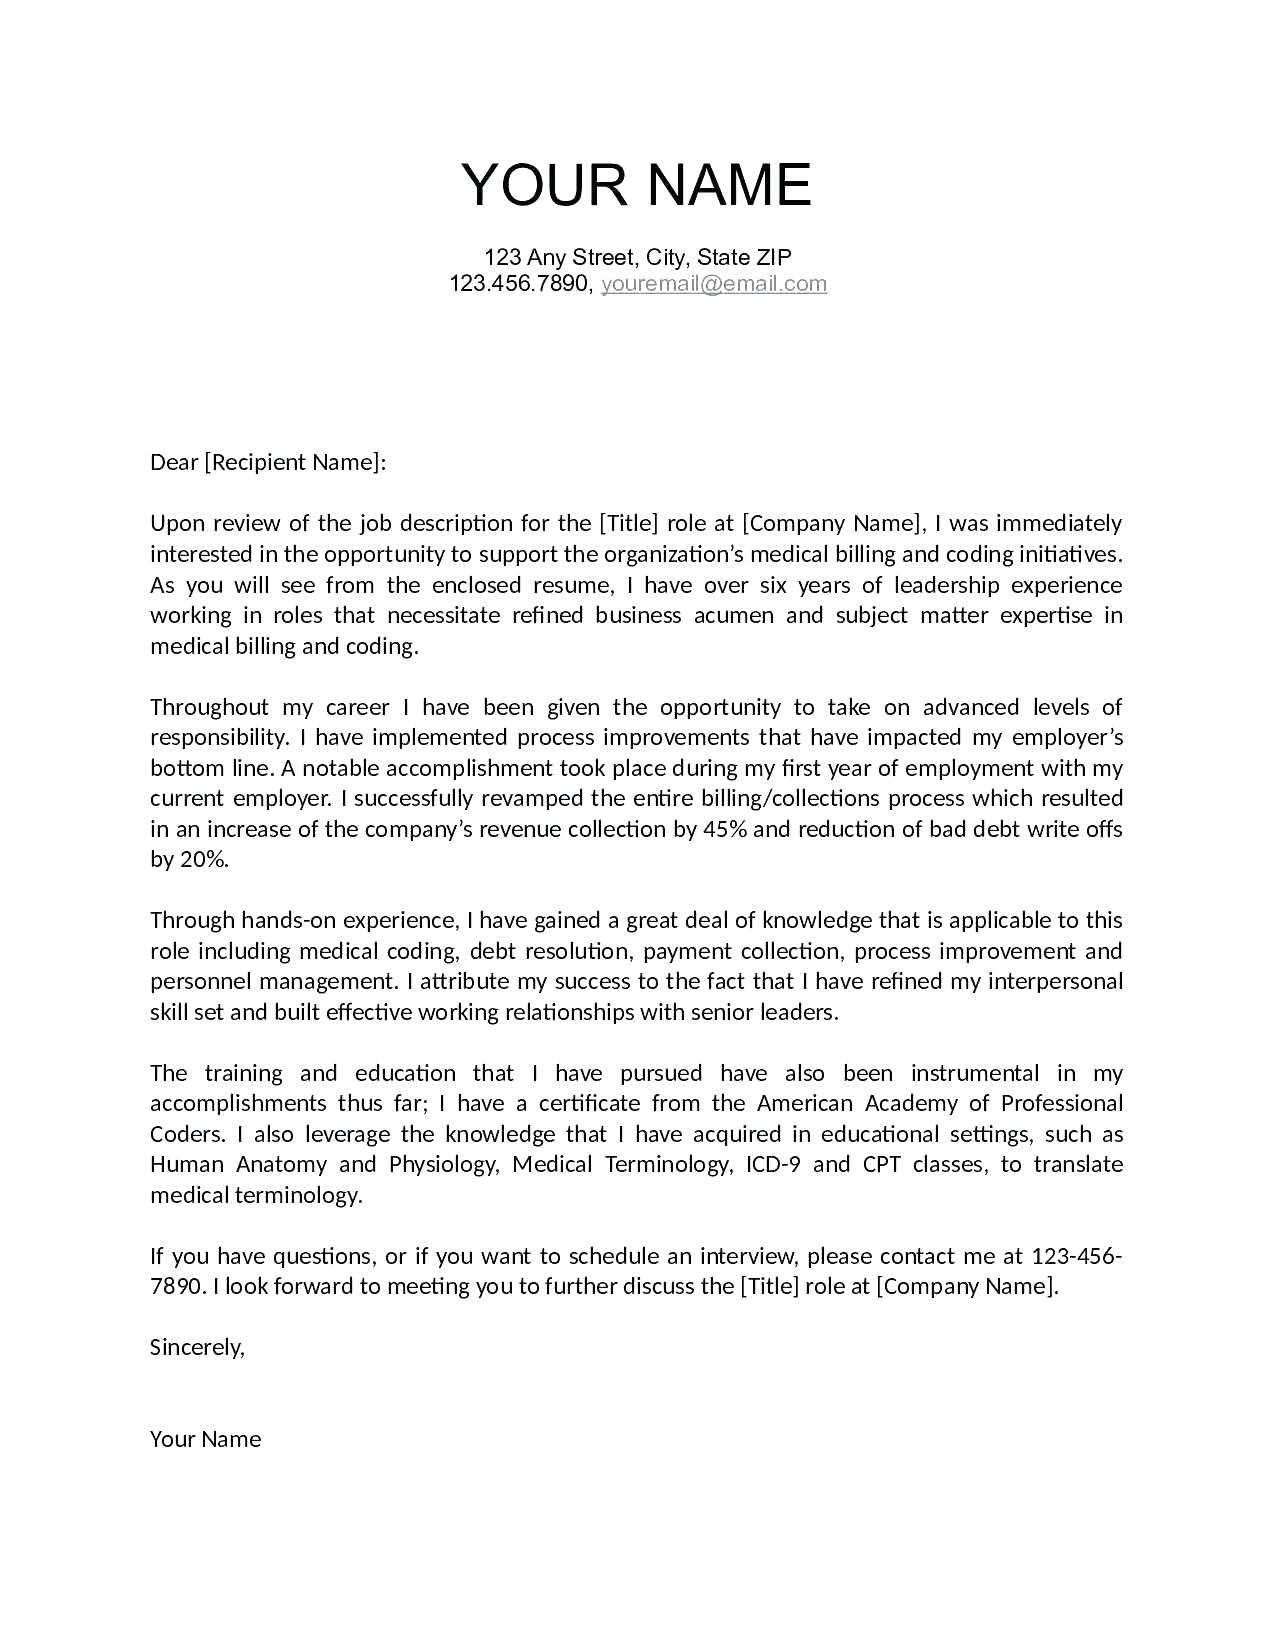 Administrative Assistant Cover Letters New Sample Cover Letter For An Administrative Assistant Position Of